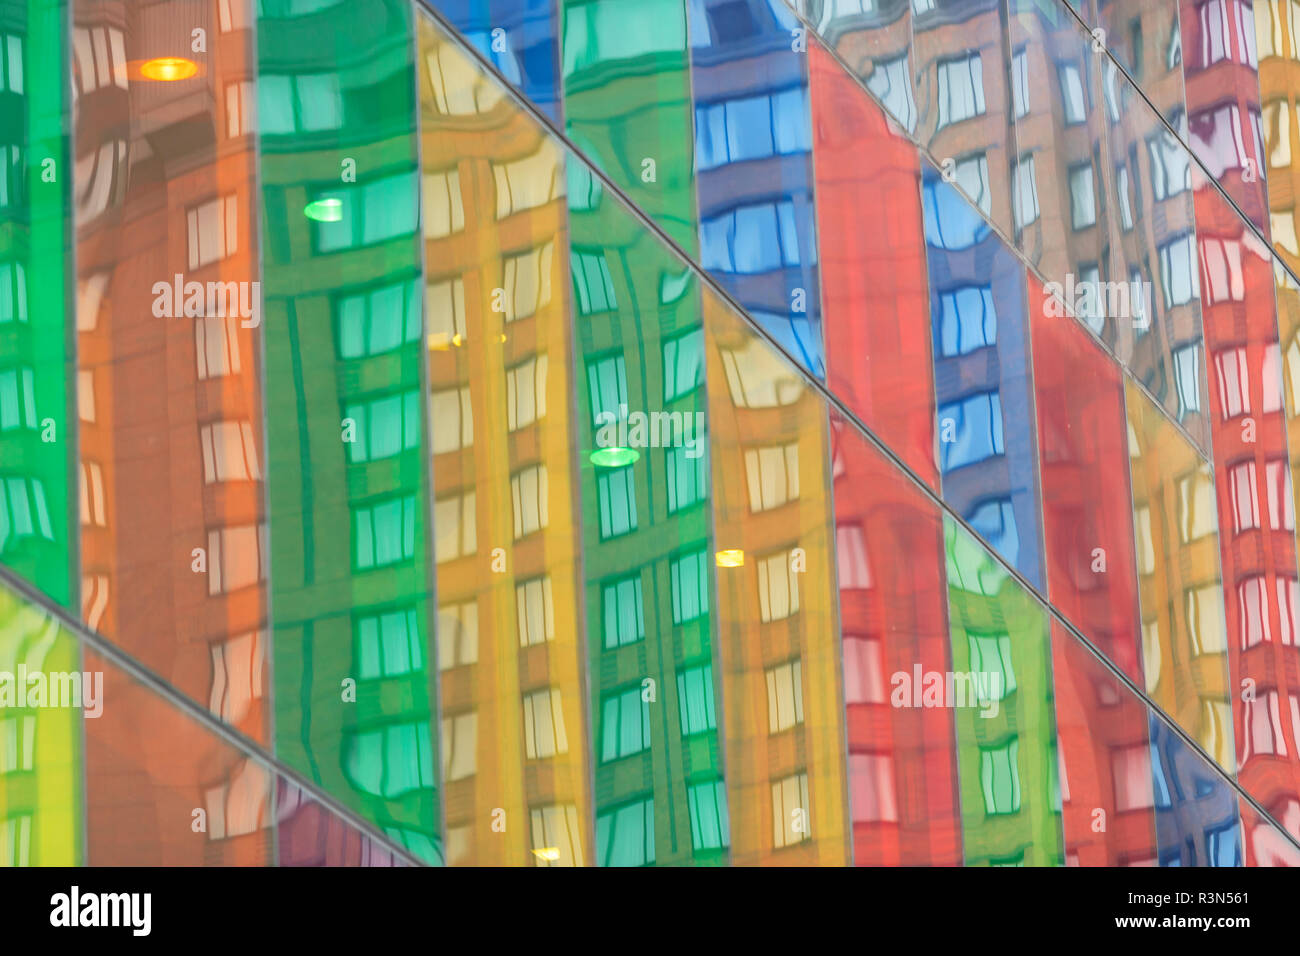 Building reflecting in colorful windows of Montreal Convention Center, International Quarter, Montreal, Quebec, Canada - Stock Image